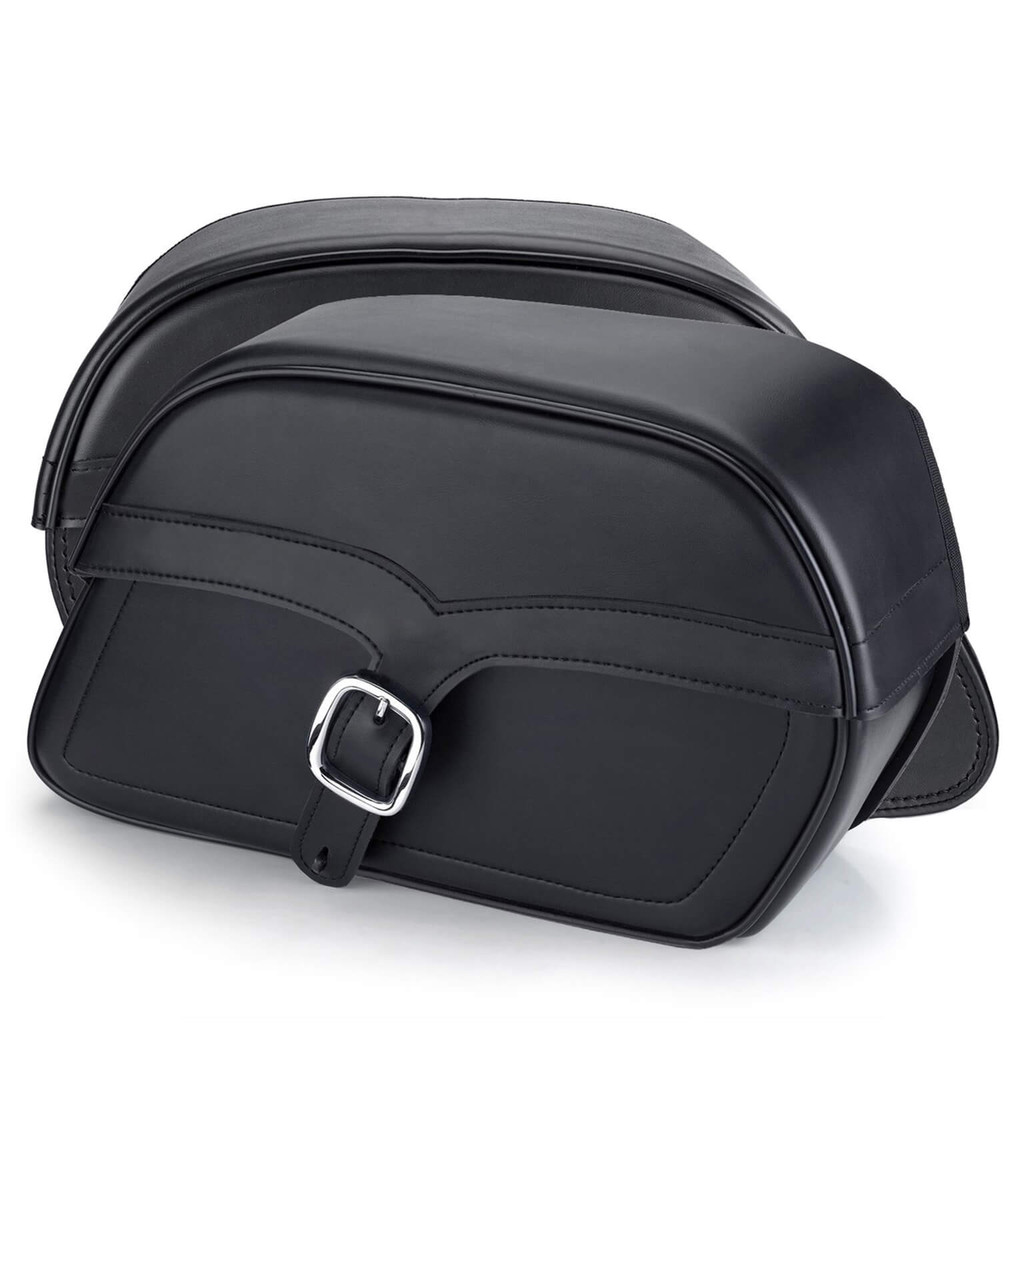 Indian Scout Sixty SS Slanted Large Motorcycle Saddlebags Both Bags View